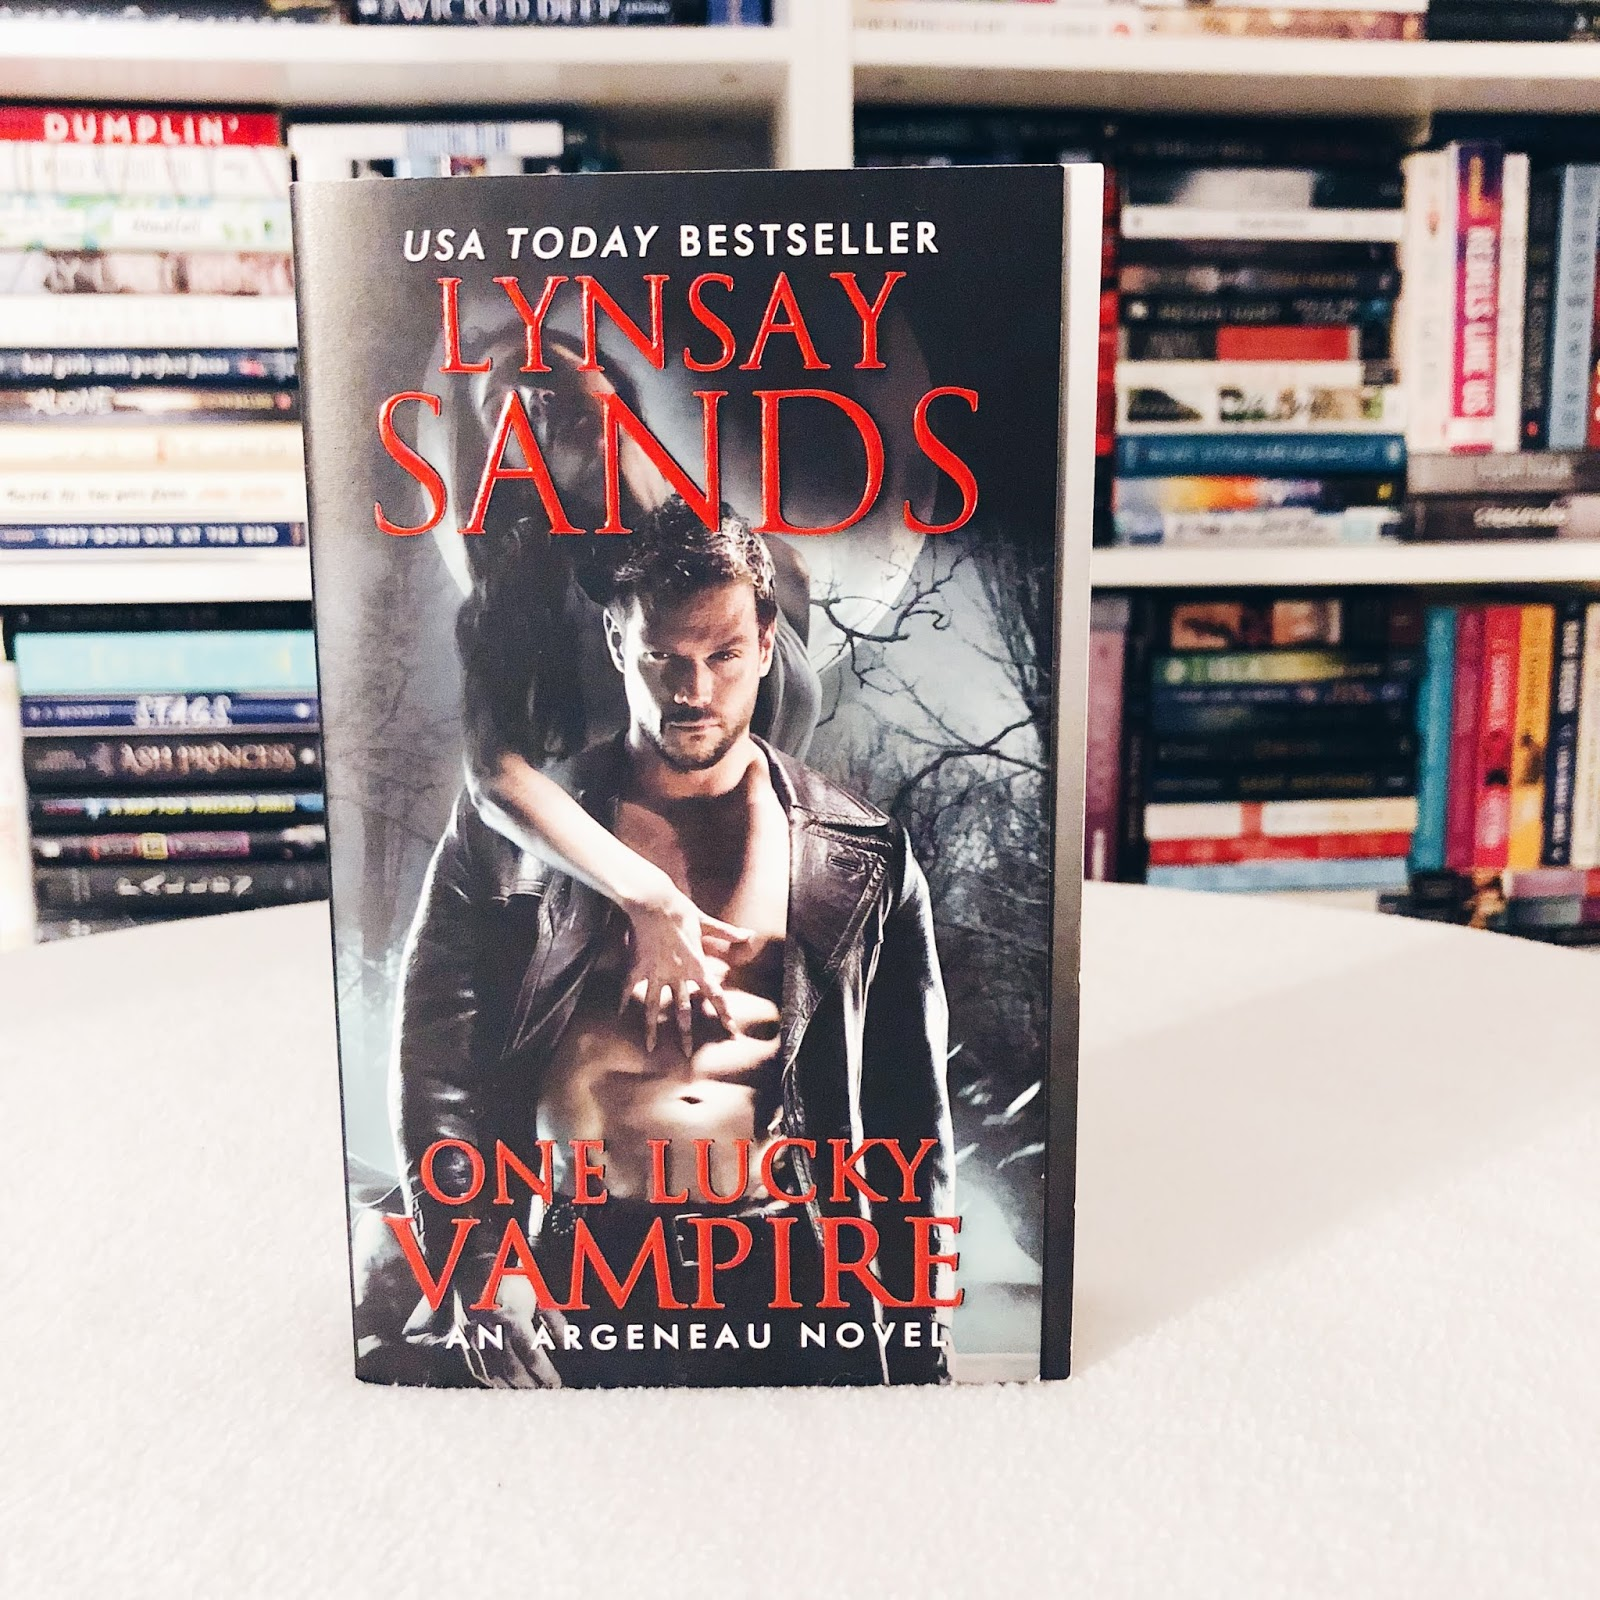 Lynsay sands goodreads giveaways